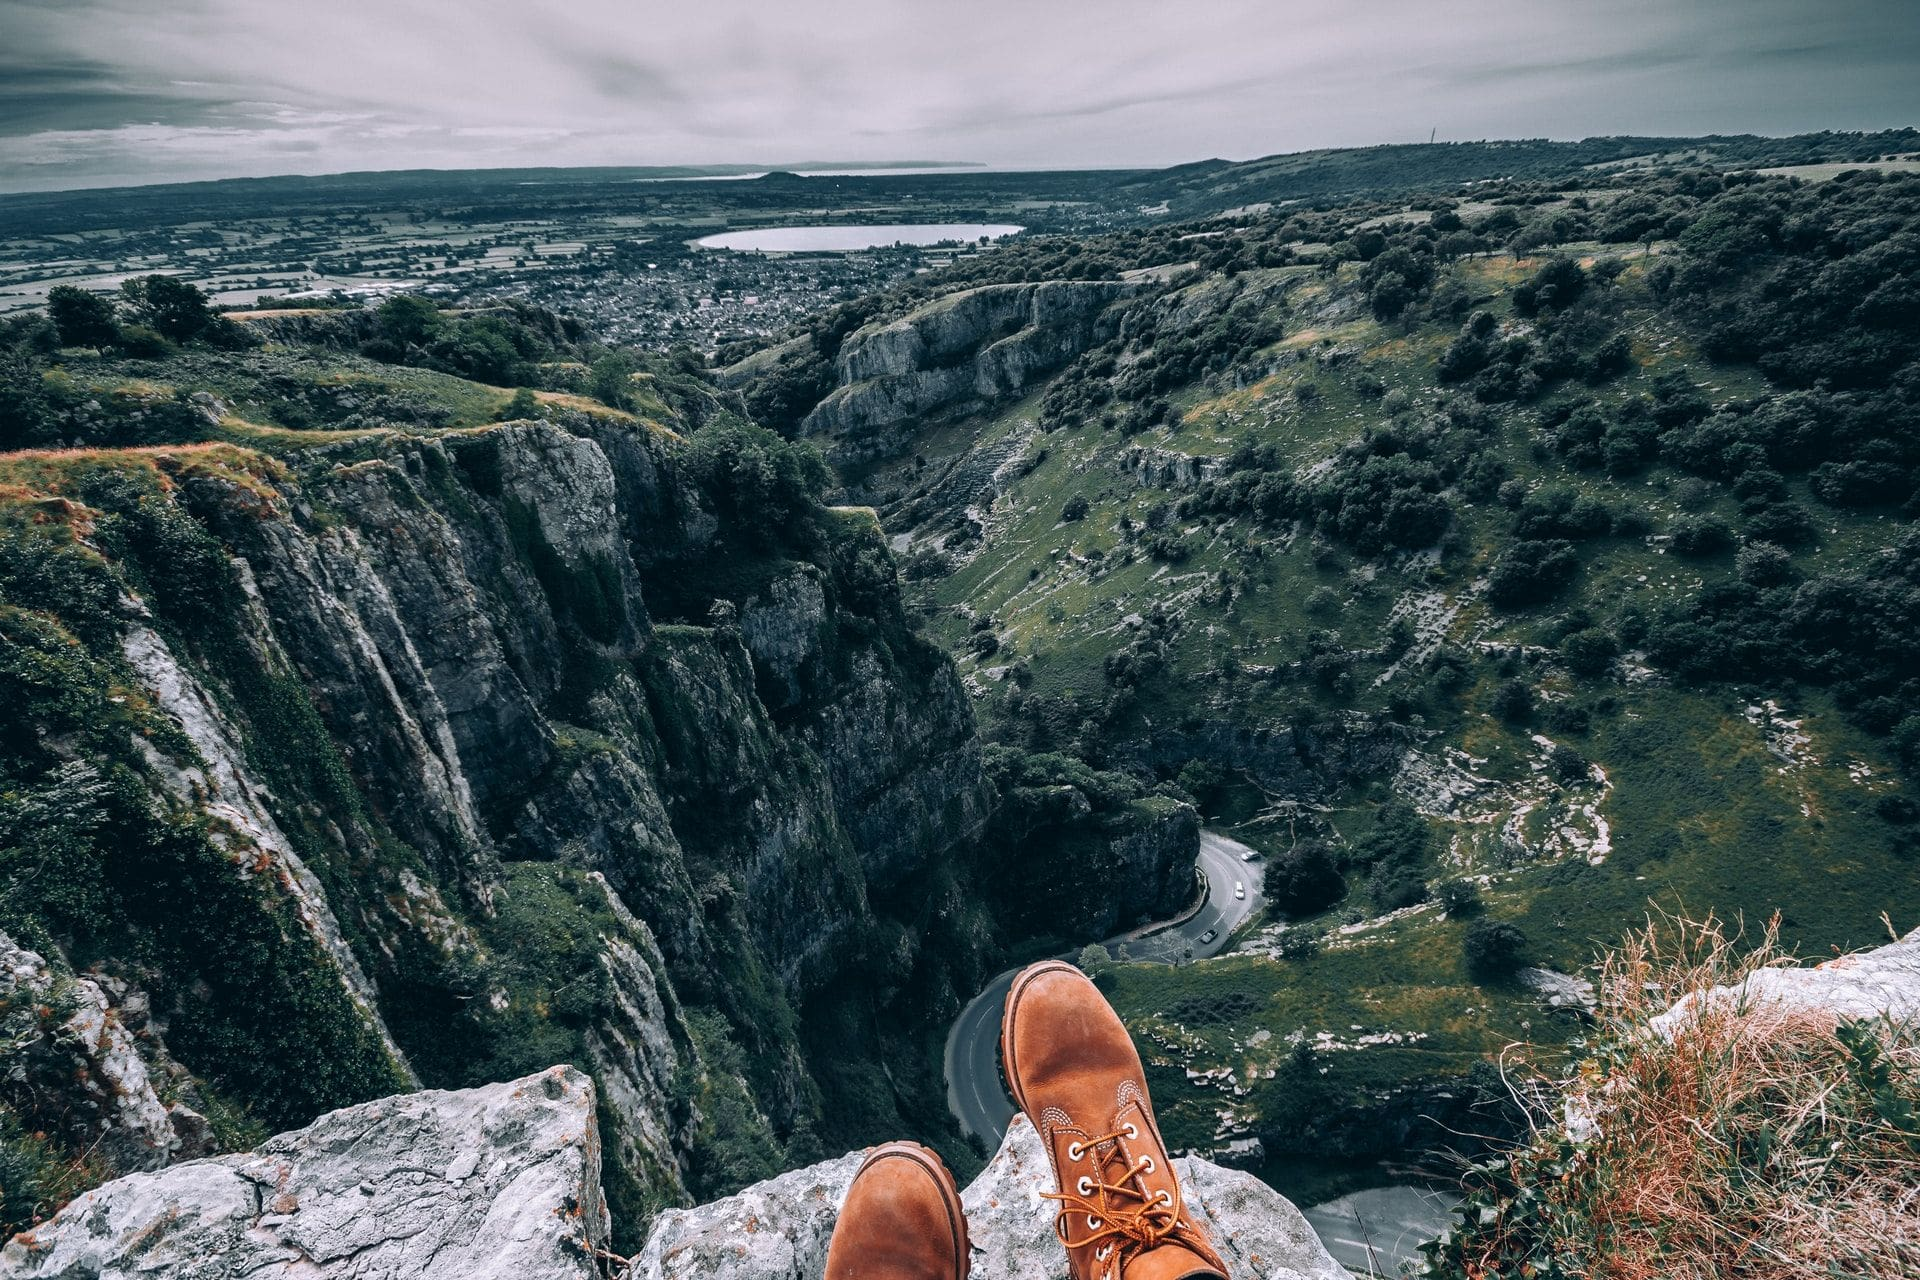 boots-sat-on-top-of-rock-above-winding-road-cheddar-gorge-somerset-day-trips-from-bristol